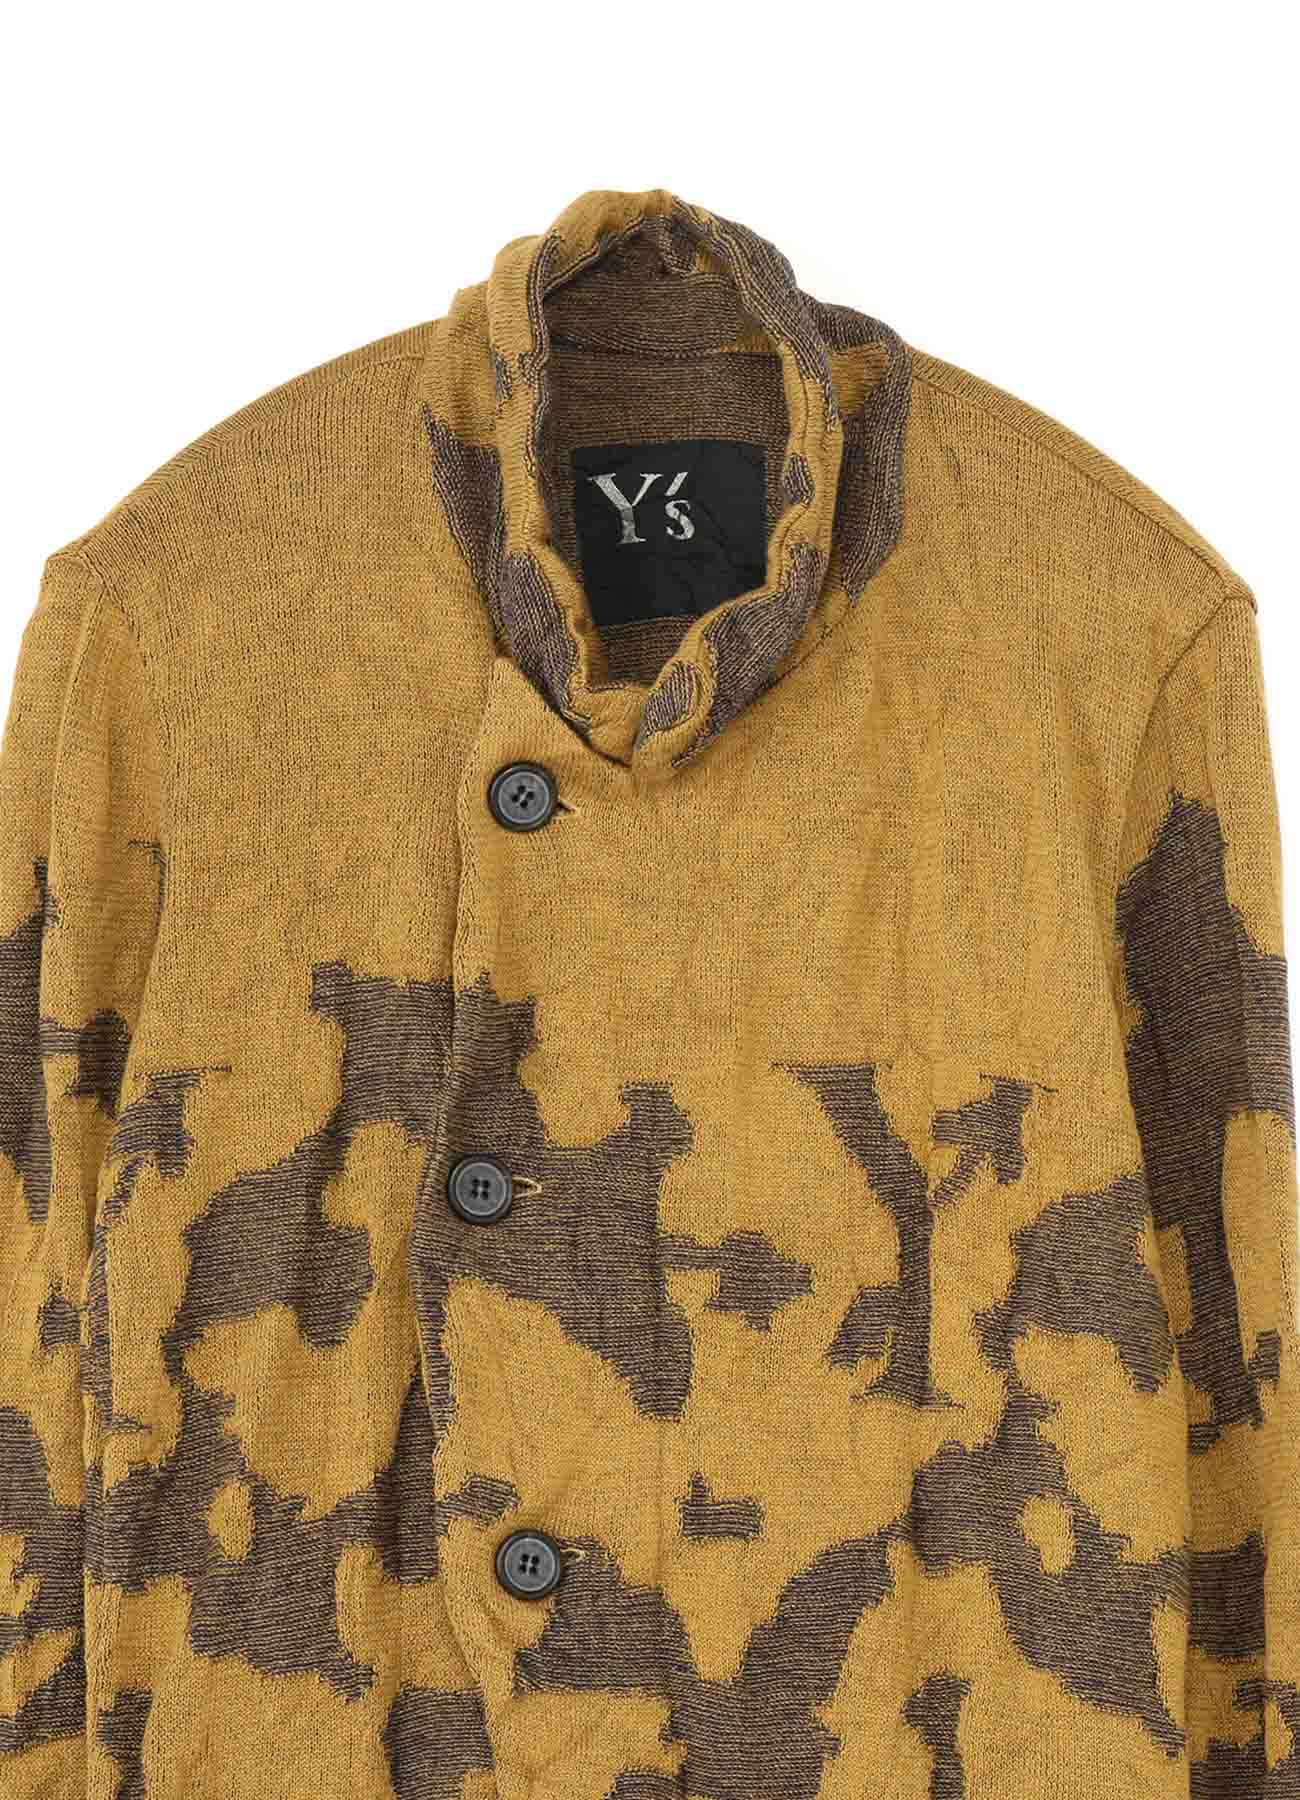 CAMOFLAGE LINKS 4 BUTTONS JACKET